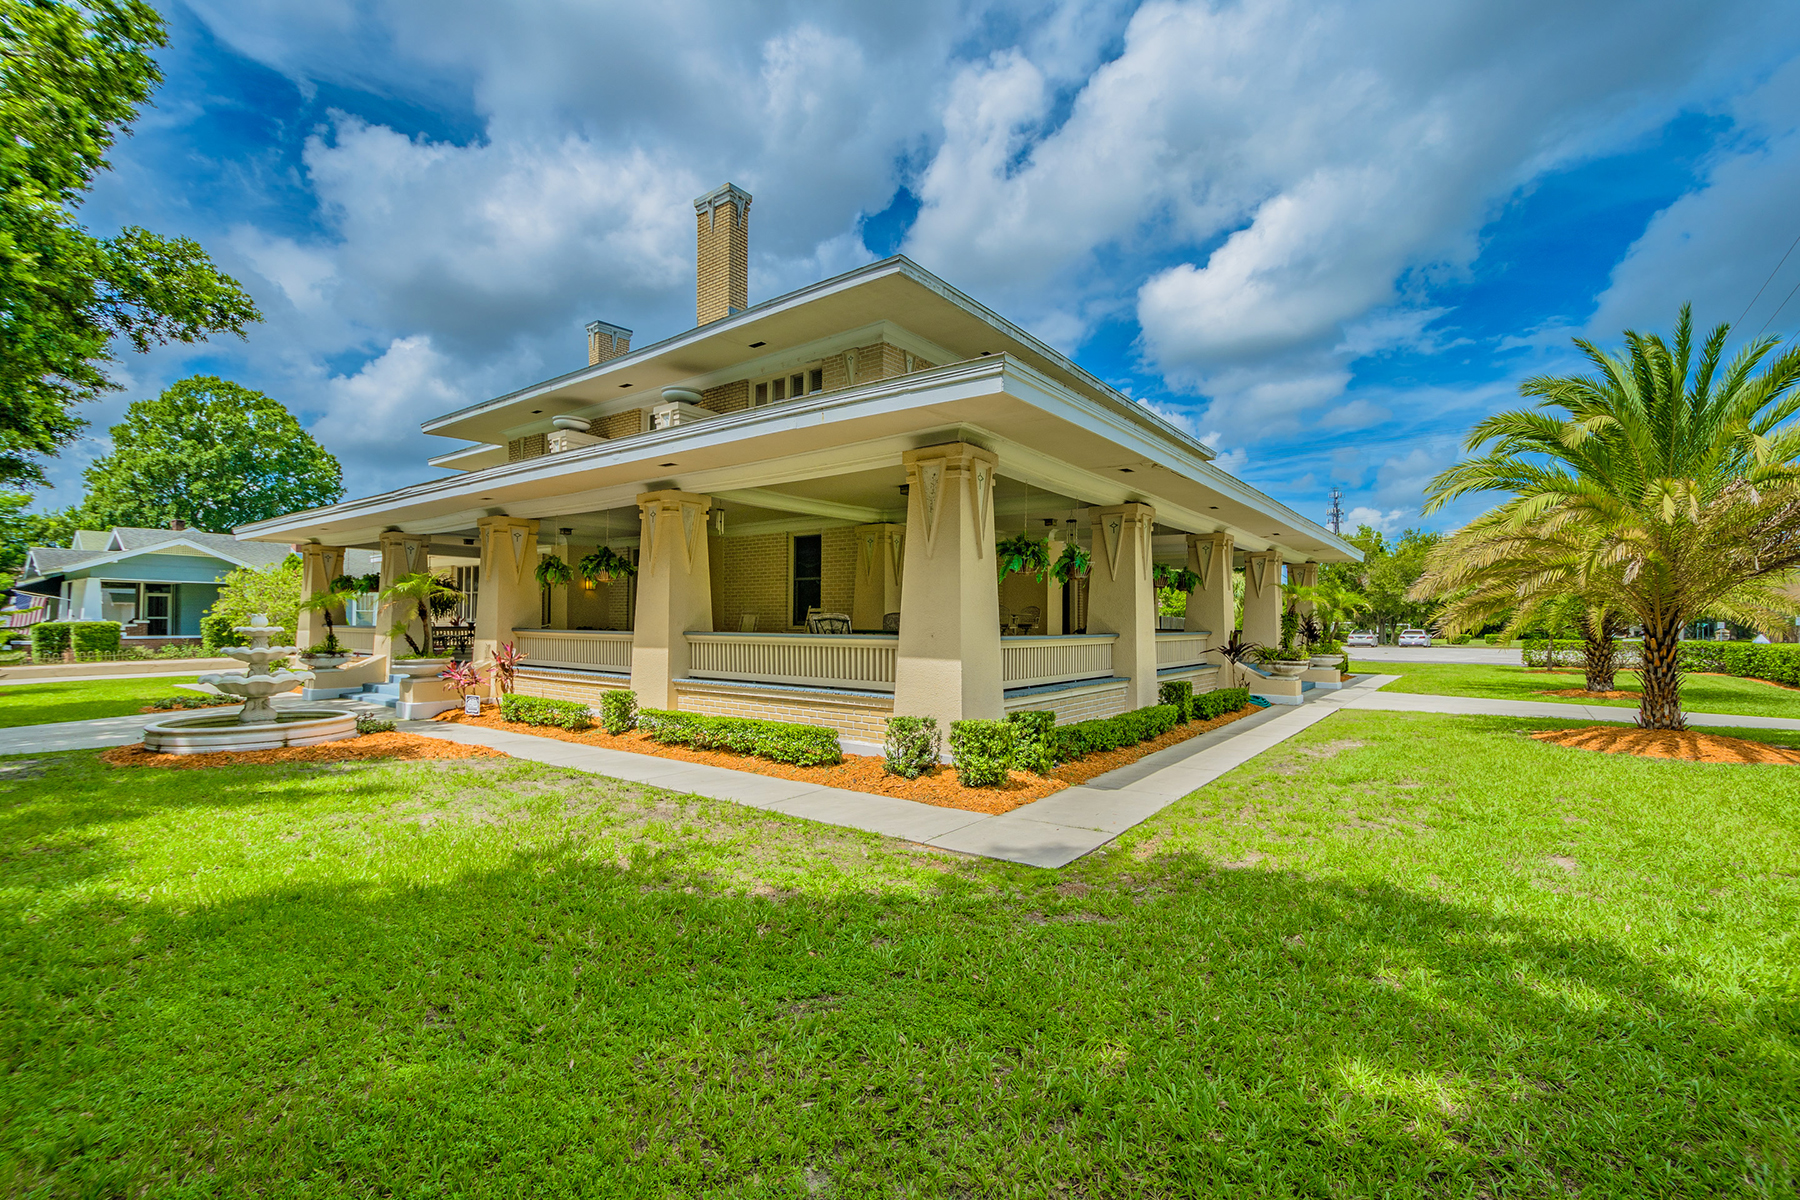 single family homes for Active at LAKELAND 417 Frank Lloyd Wright Way Lakeland, Florida 33803 United States